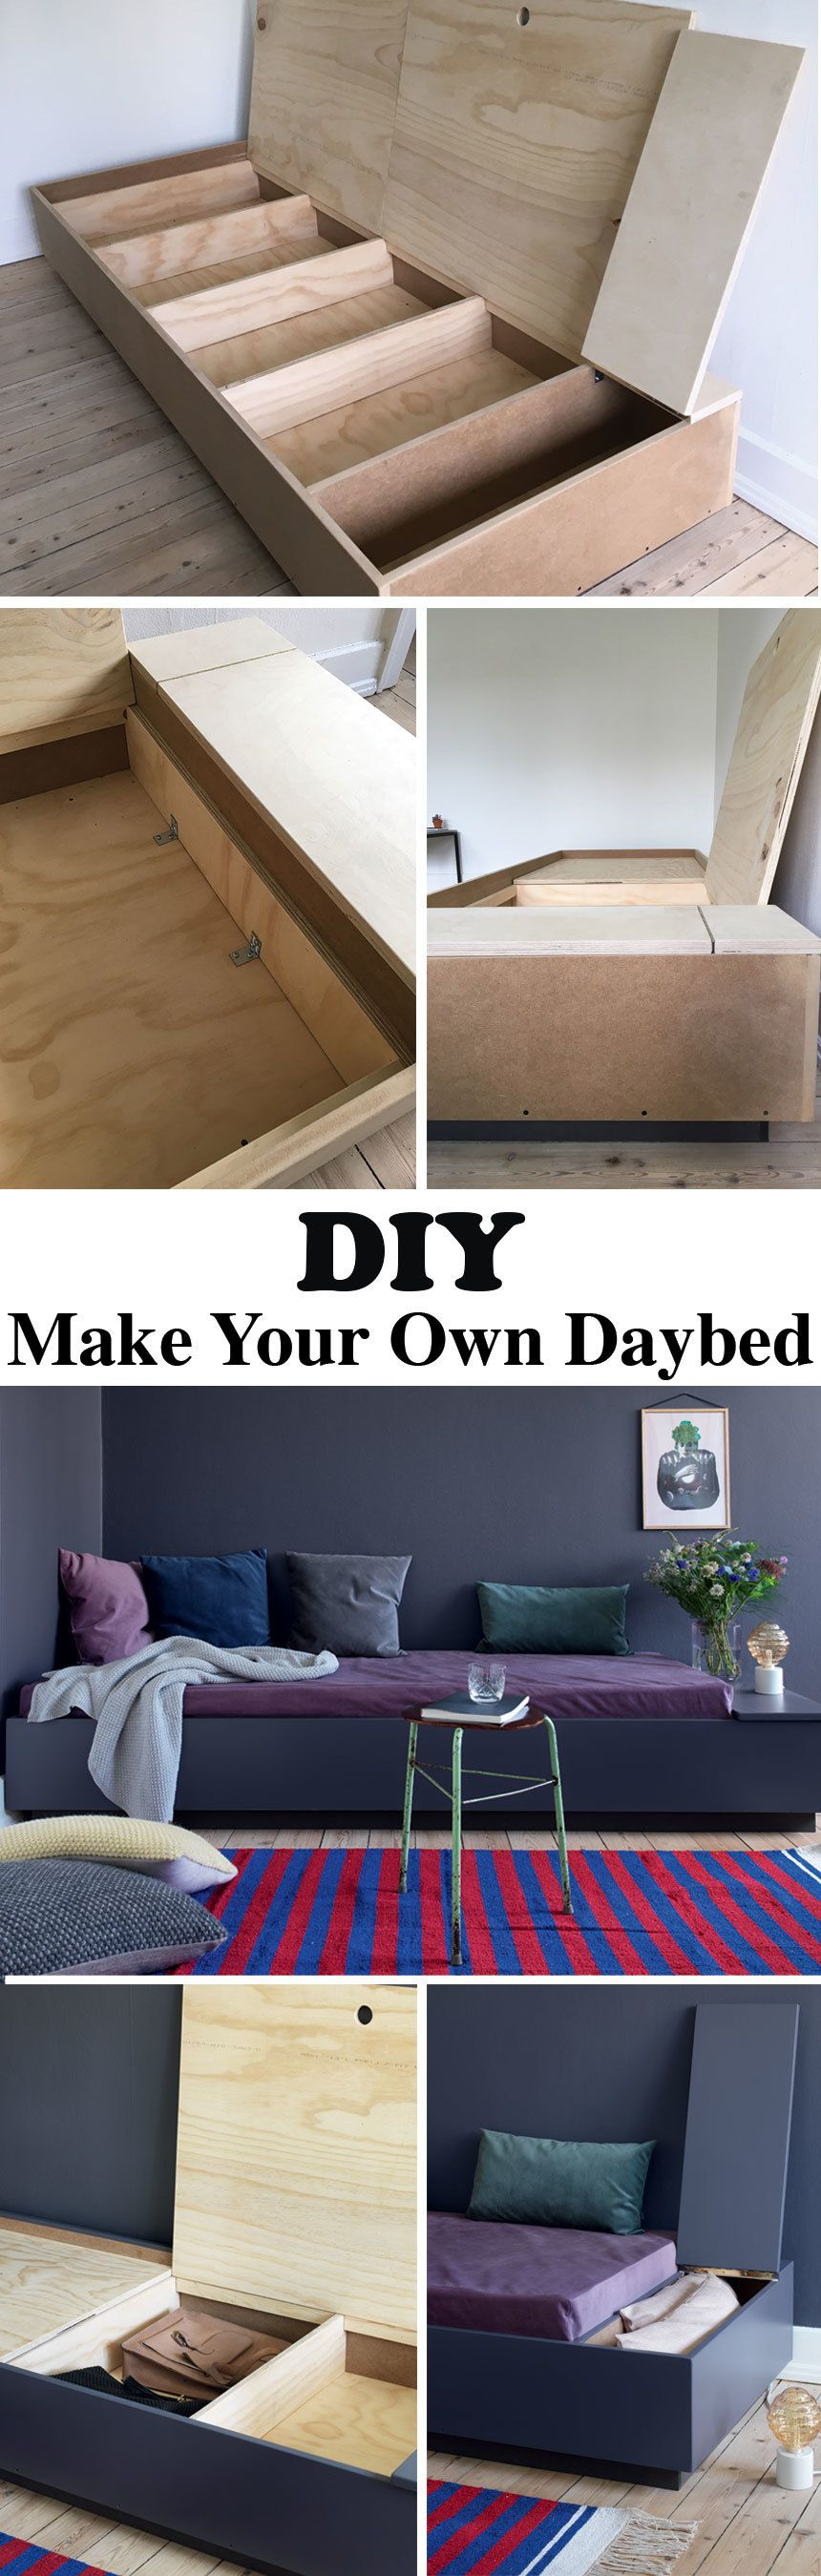 Byg Din Egen Daybed Sadan Tiny Pinterest Diy Daybed Room